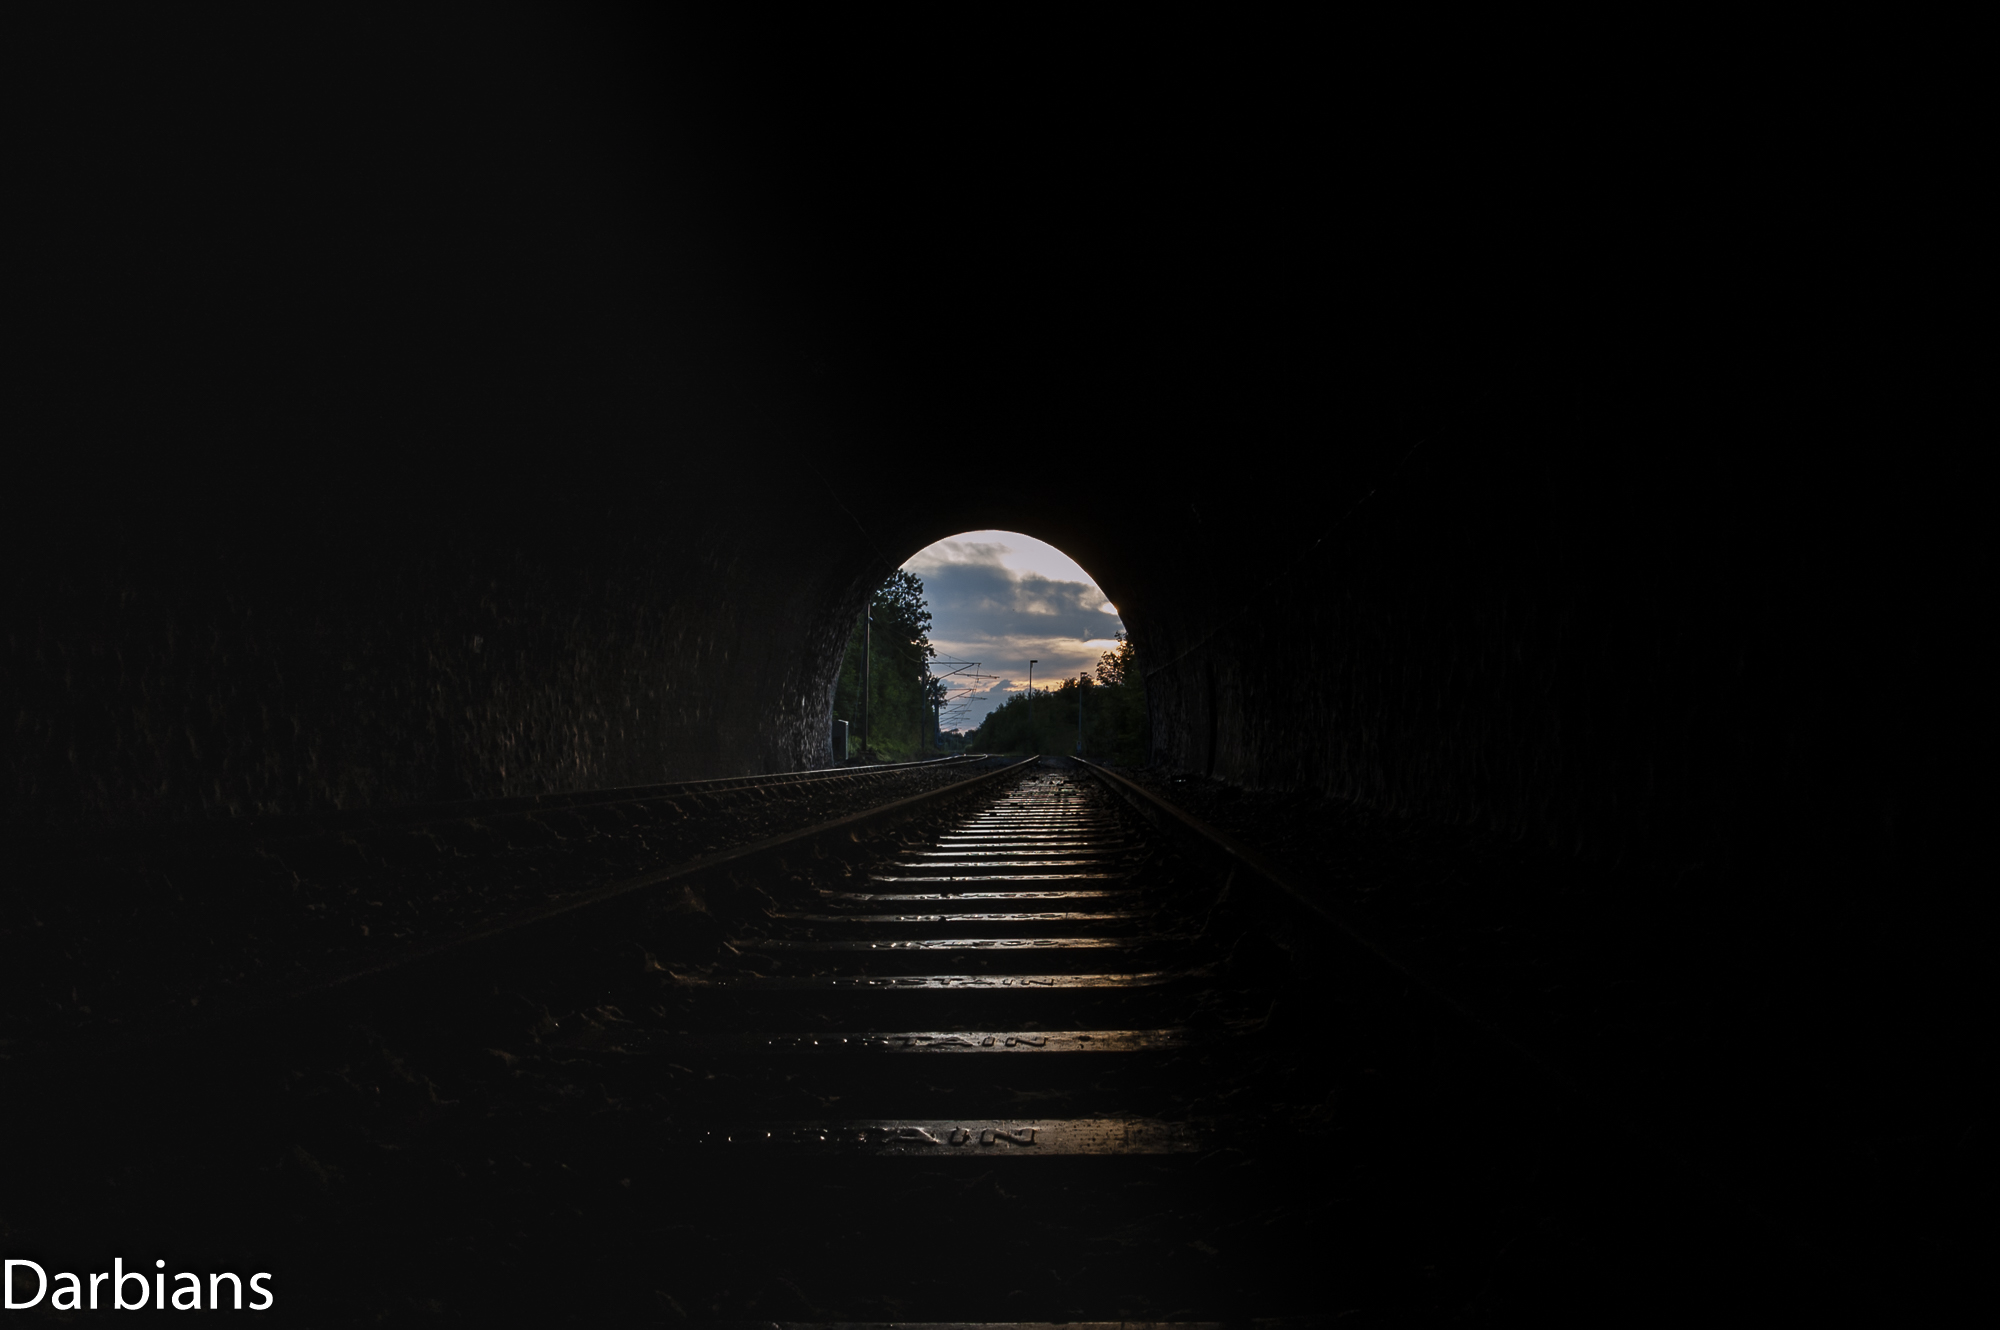 Old Dalby Test Track. Asfordby Tunnel, another sunset